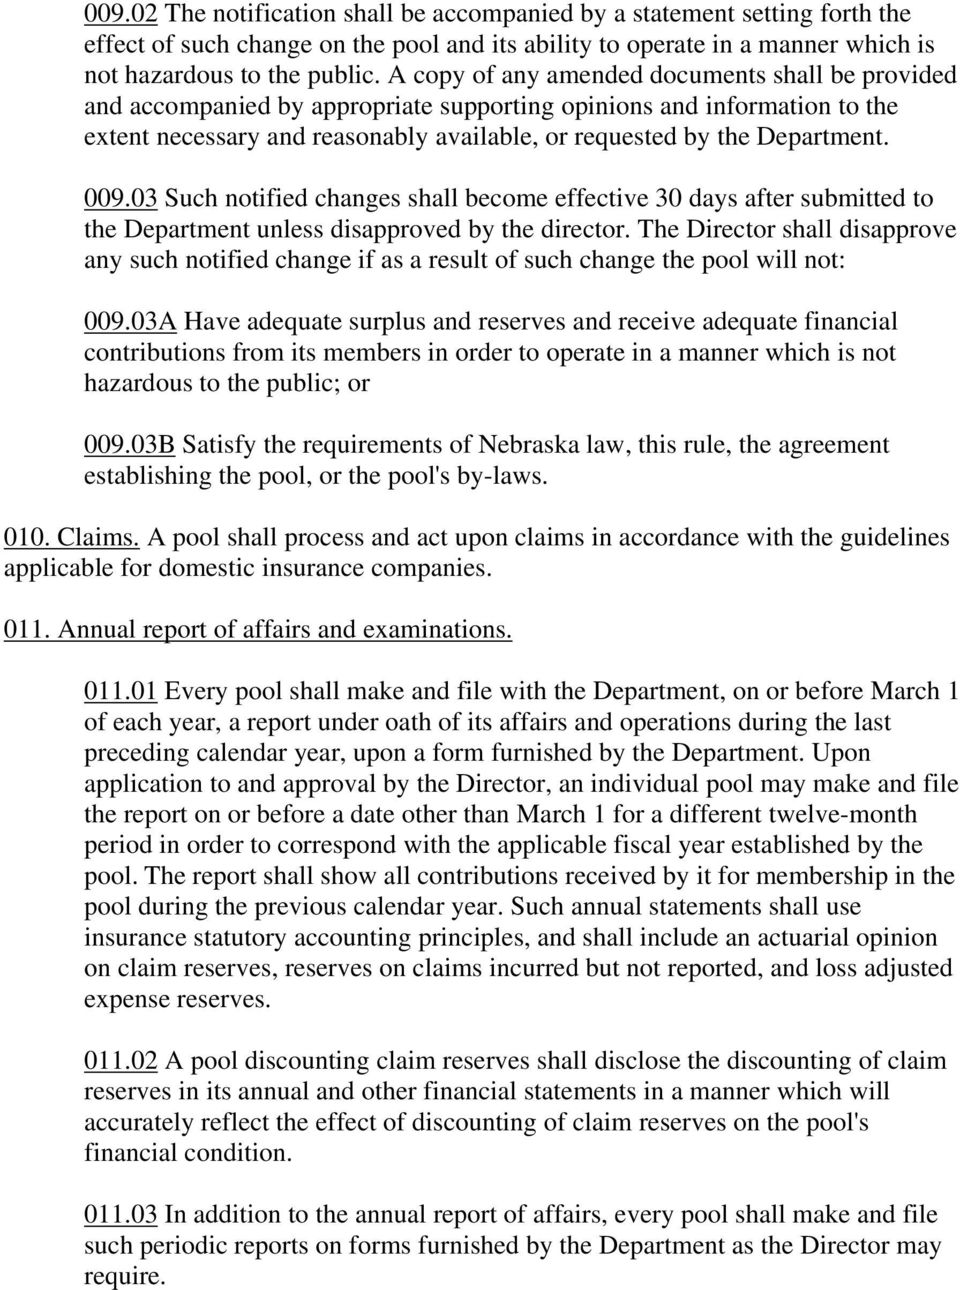 009.03 Such notified changes shall become effective 30 days after submitted to the Department unless disapproved by the director.